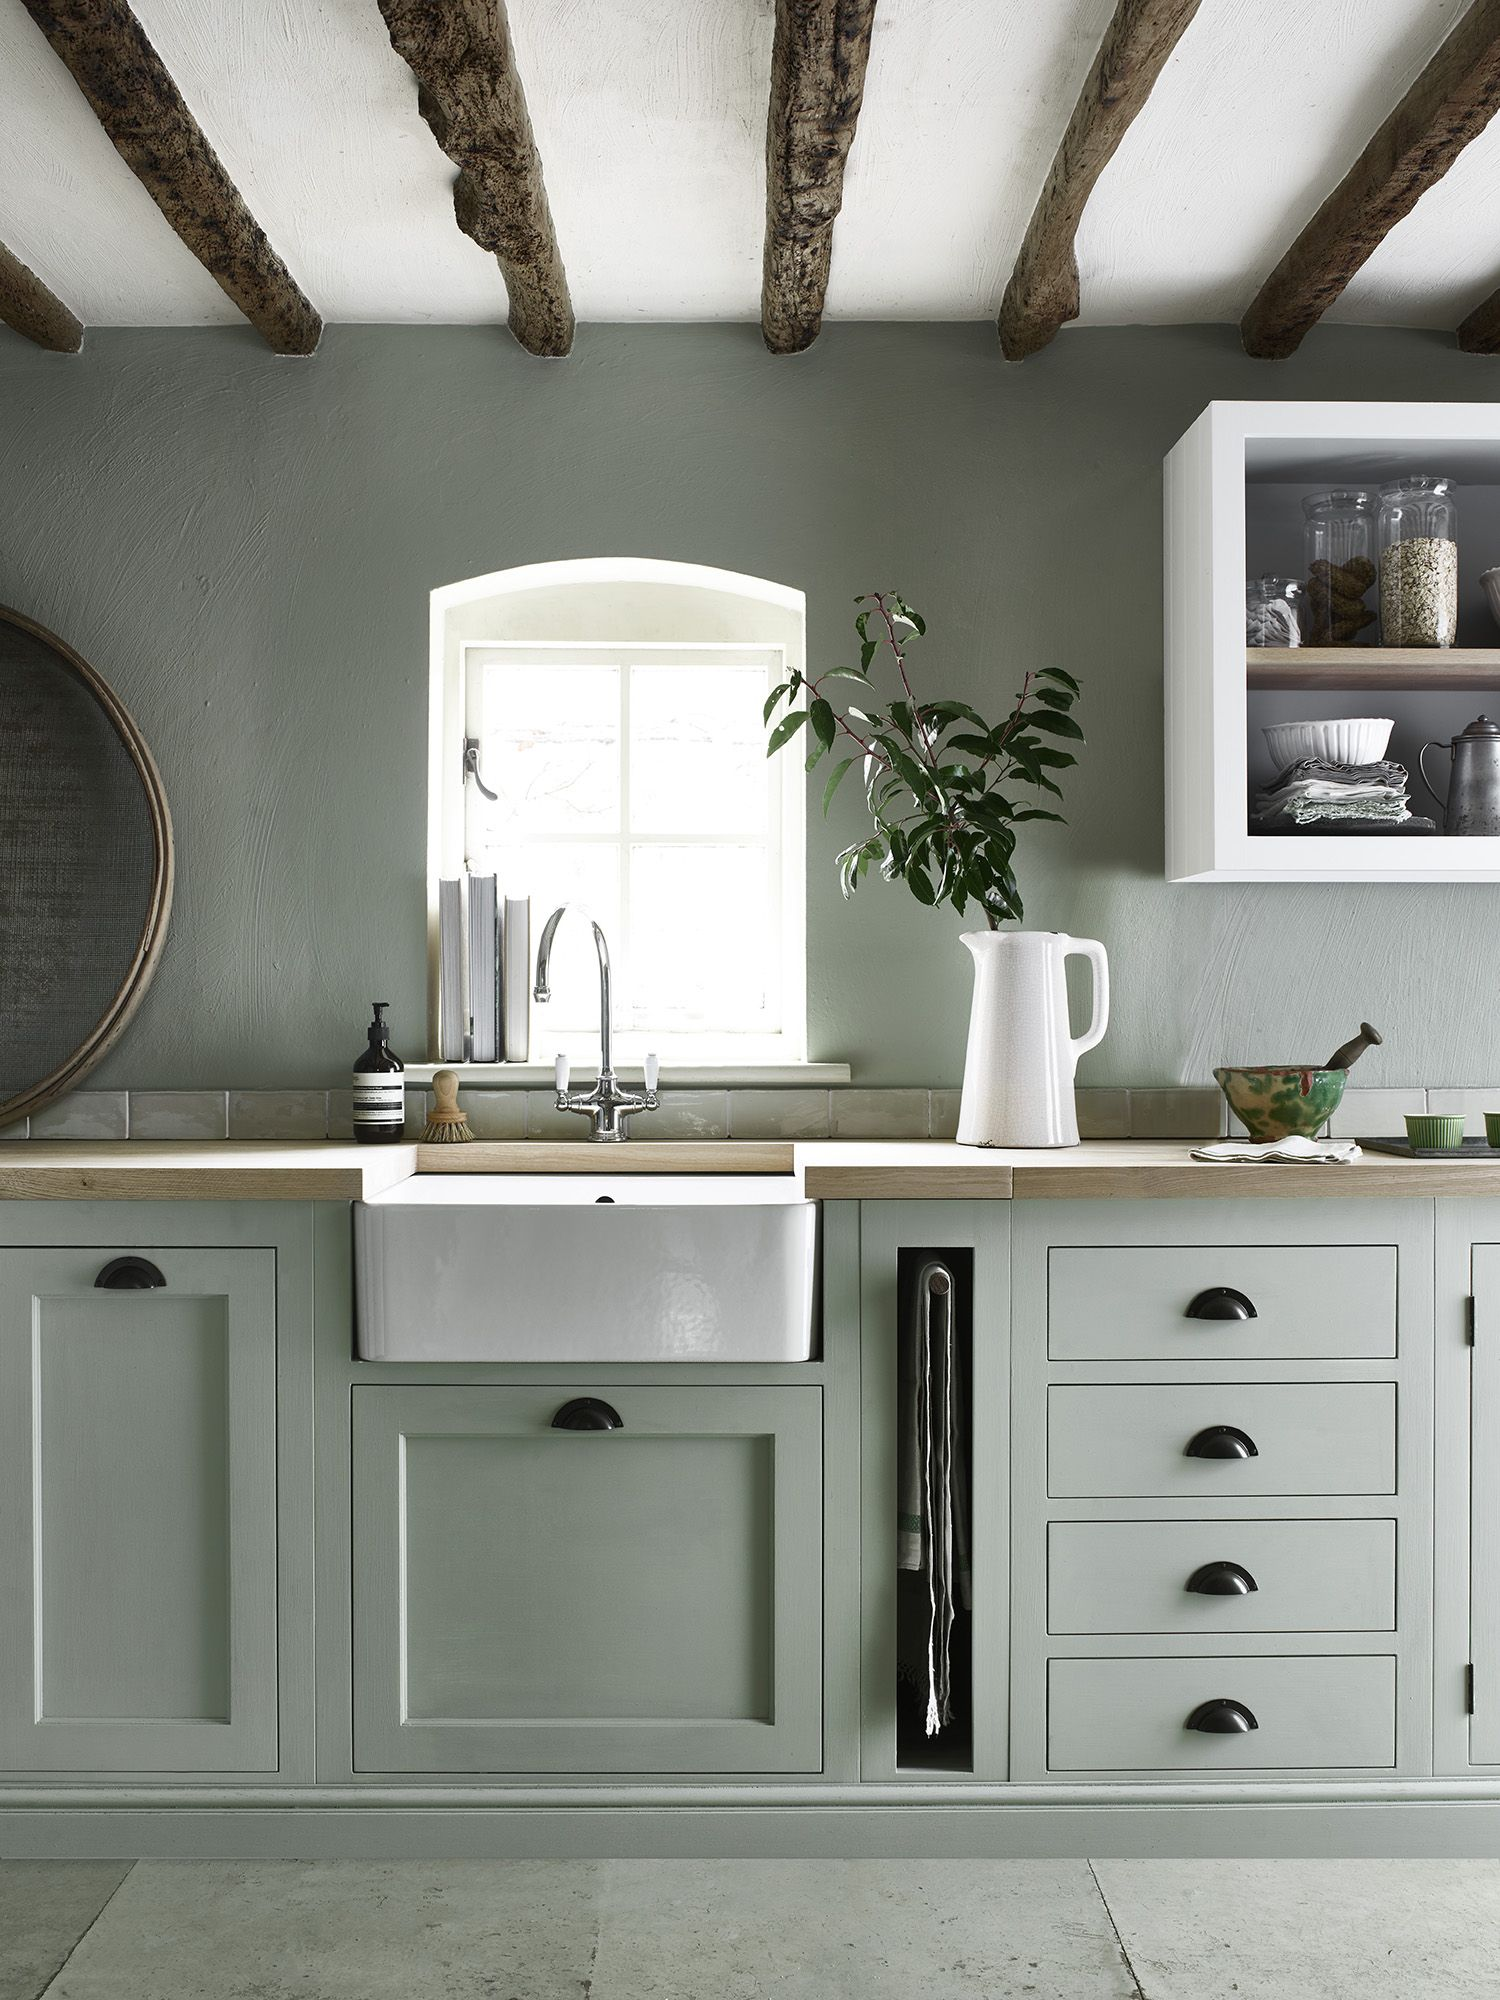 Delightful Henley Kitchen Hand Painted In Sage Great Idea For Pull Out Towel Rack Next  To